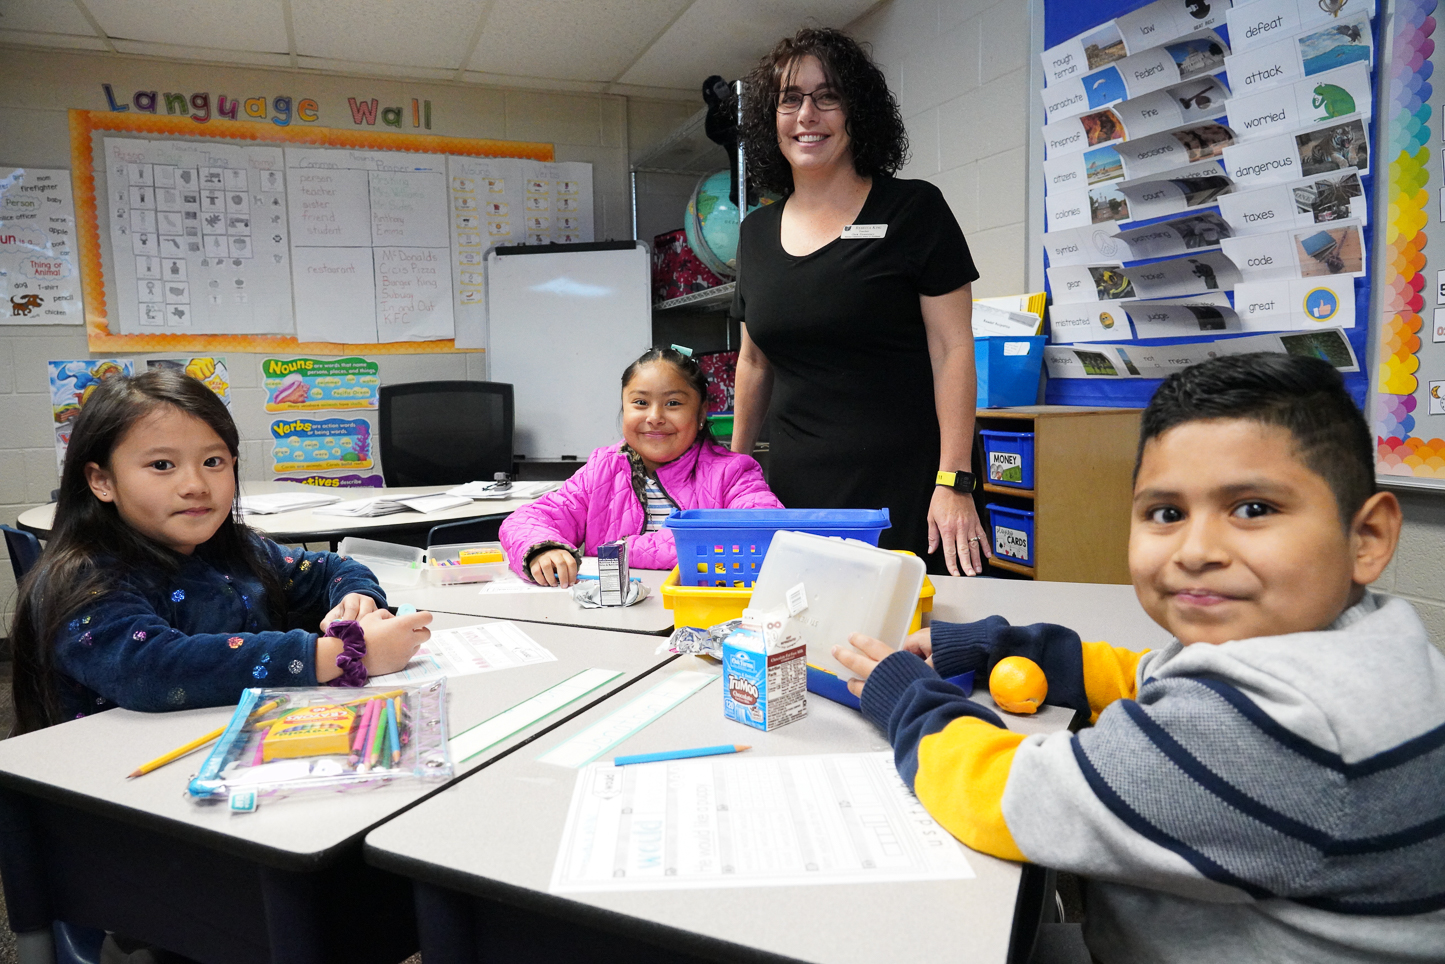 """Roy Clark Elementary -  Rebecca King, 2nd Grade/5th Grade  Second grade teacher Rebecca King has been named Roy Clark Elementary Teacher of the Year for 2019-2020. She has been with Union since 2015.  (She started the year as a fifth grade teacher but took over a second grade class as enrollment numbers changed at Roy Clark.)  """"Growing up I knew I wanted to be a teacher,"""" King said.  """"When my teachers cleaned out their files at the end of each school year, I always jumped in to take their extra copies home.  I often played school with my stuffed animals.  In elementary school, the special education students were in their own classrooms in our building.  In 5th grade, as a safety patrol, we could volunteer to spend our recess time with these students.  I always enjoyed working in these classrooms. In high school, I changed my mind and thought I wanted to be a speech pathologist.  While I was working on my master's degree, I missed the classroom and always had ideas geared for teaching a class. I changed my degree plan and was much happier.  Nineteen years later, I still enjoy seeing what children can do.:  King's favorite subject to teach is math.  """"I love math because there are so many different ways to get to a solution. Over the years I have heard many students – and their parents – say """"They are not good at math and that's OK because some people just aren't.""""  I want to change the mindset from it is ok to not be good at math to the mindset of everyone can be good at math<"""" she said. """"I believe that everyone can be successful when they are exposed to a variety of strategies and positive messages.  Someone once said, 'To be a math person, you just have to be a person and do math'."""" King's education background includes: •Bachelors of Science – Speech Pathology – Oklahoma State University (1996) •Early Childhood and Elementary Teacher Certification - Texas Woman's University (1999) ESL Certification (2019) •Currently Working on Masters in Teaching, Learning and Leade"""